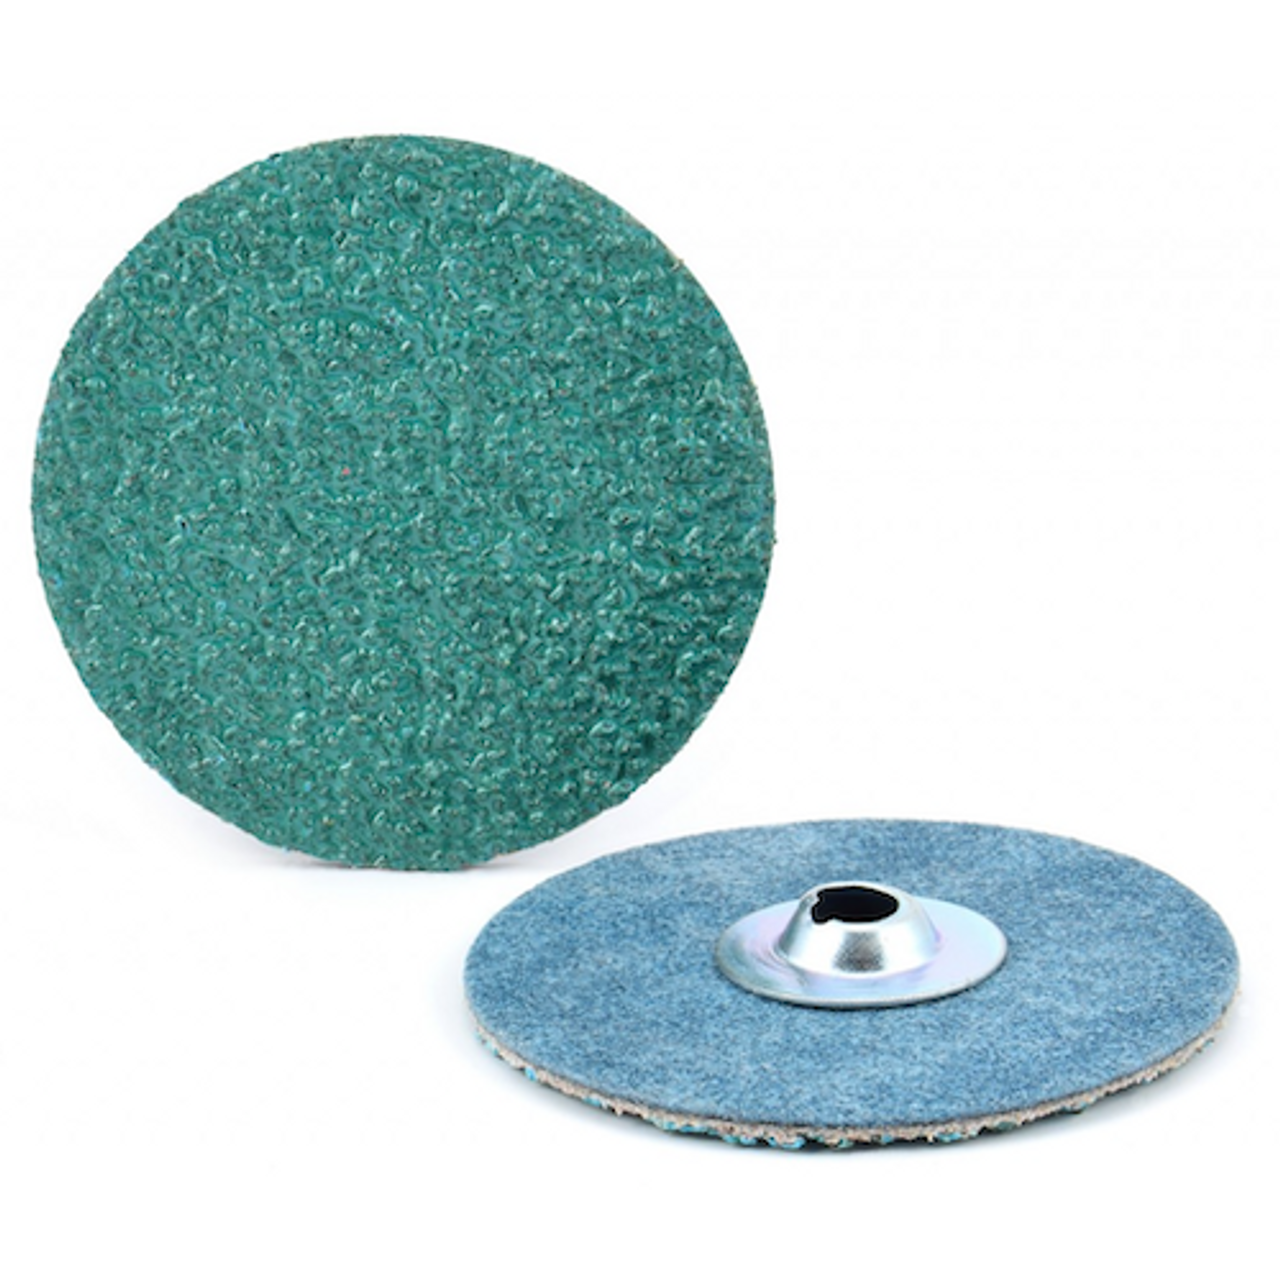 Arc Abrasives Zirconia Alumina 1-1/2 Inch 120 Grit Type S Quick Change Disc EDP: 31529